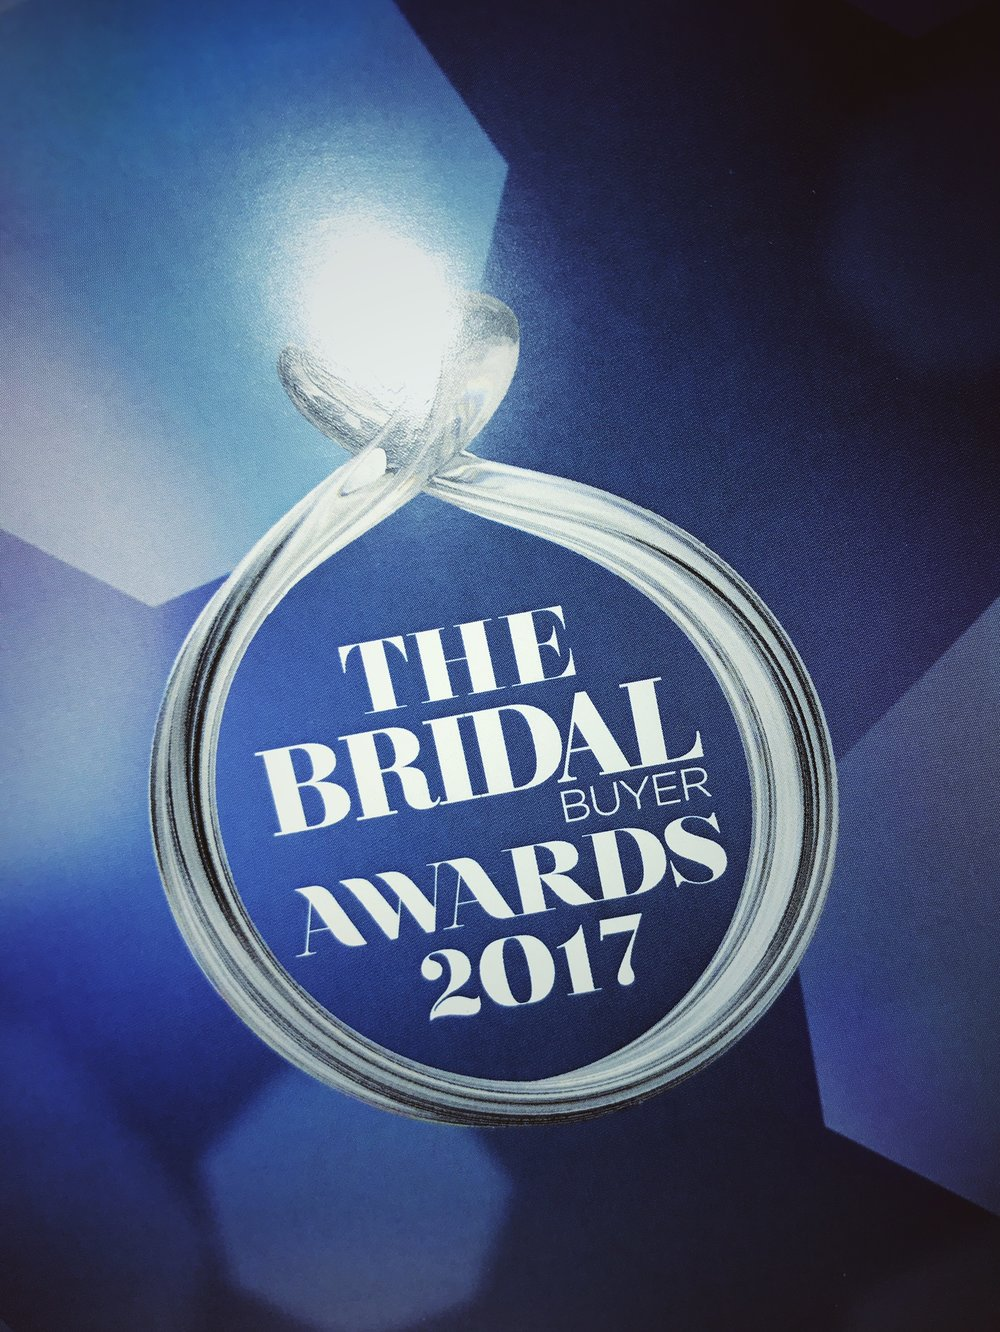 best-new-bridal-retailer-award.JPG